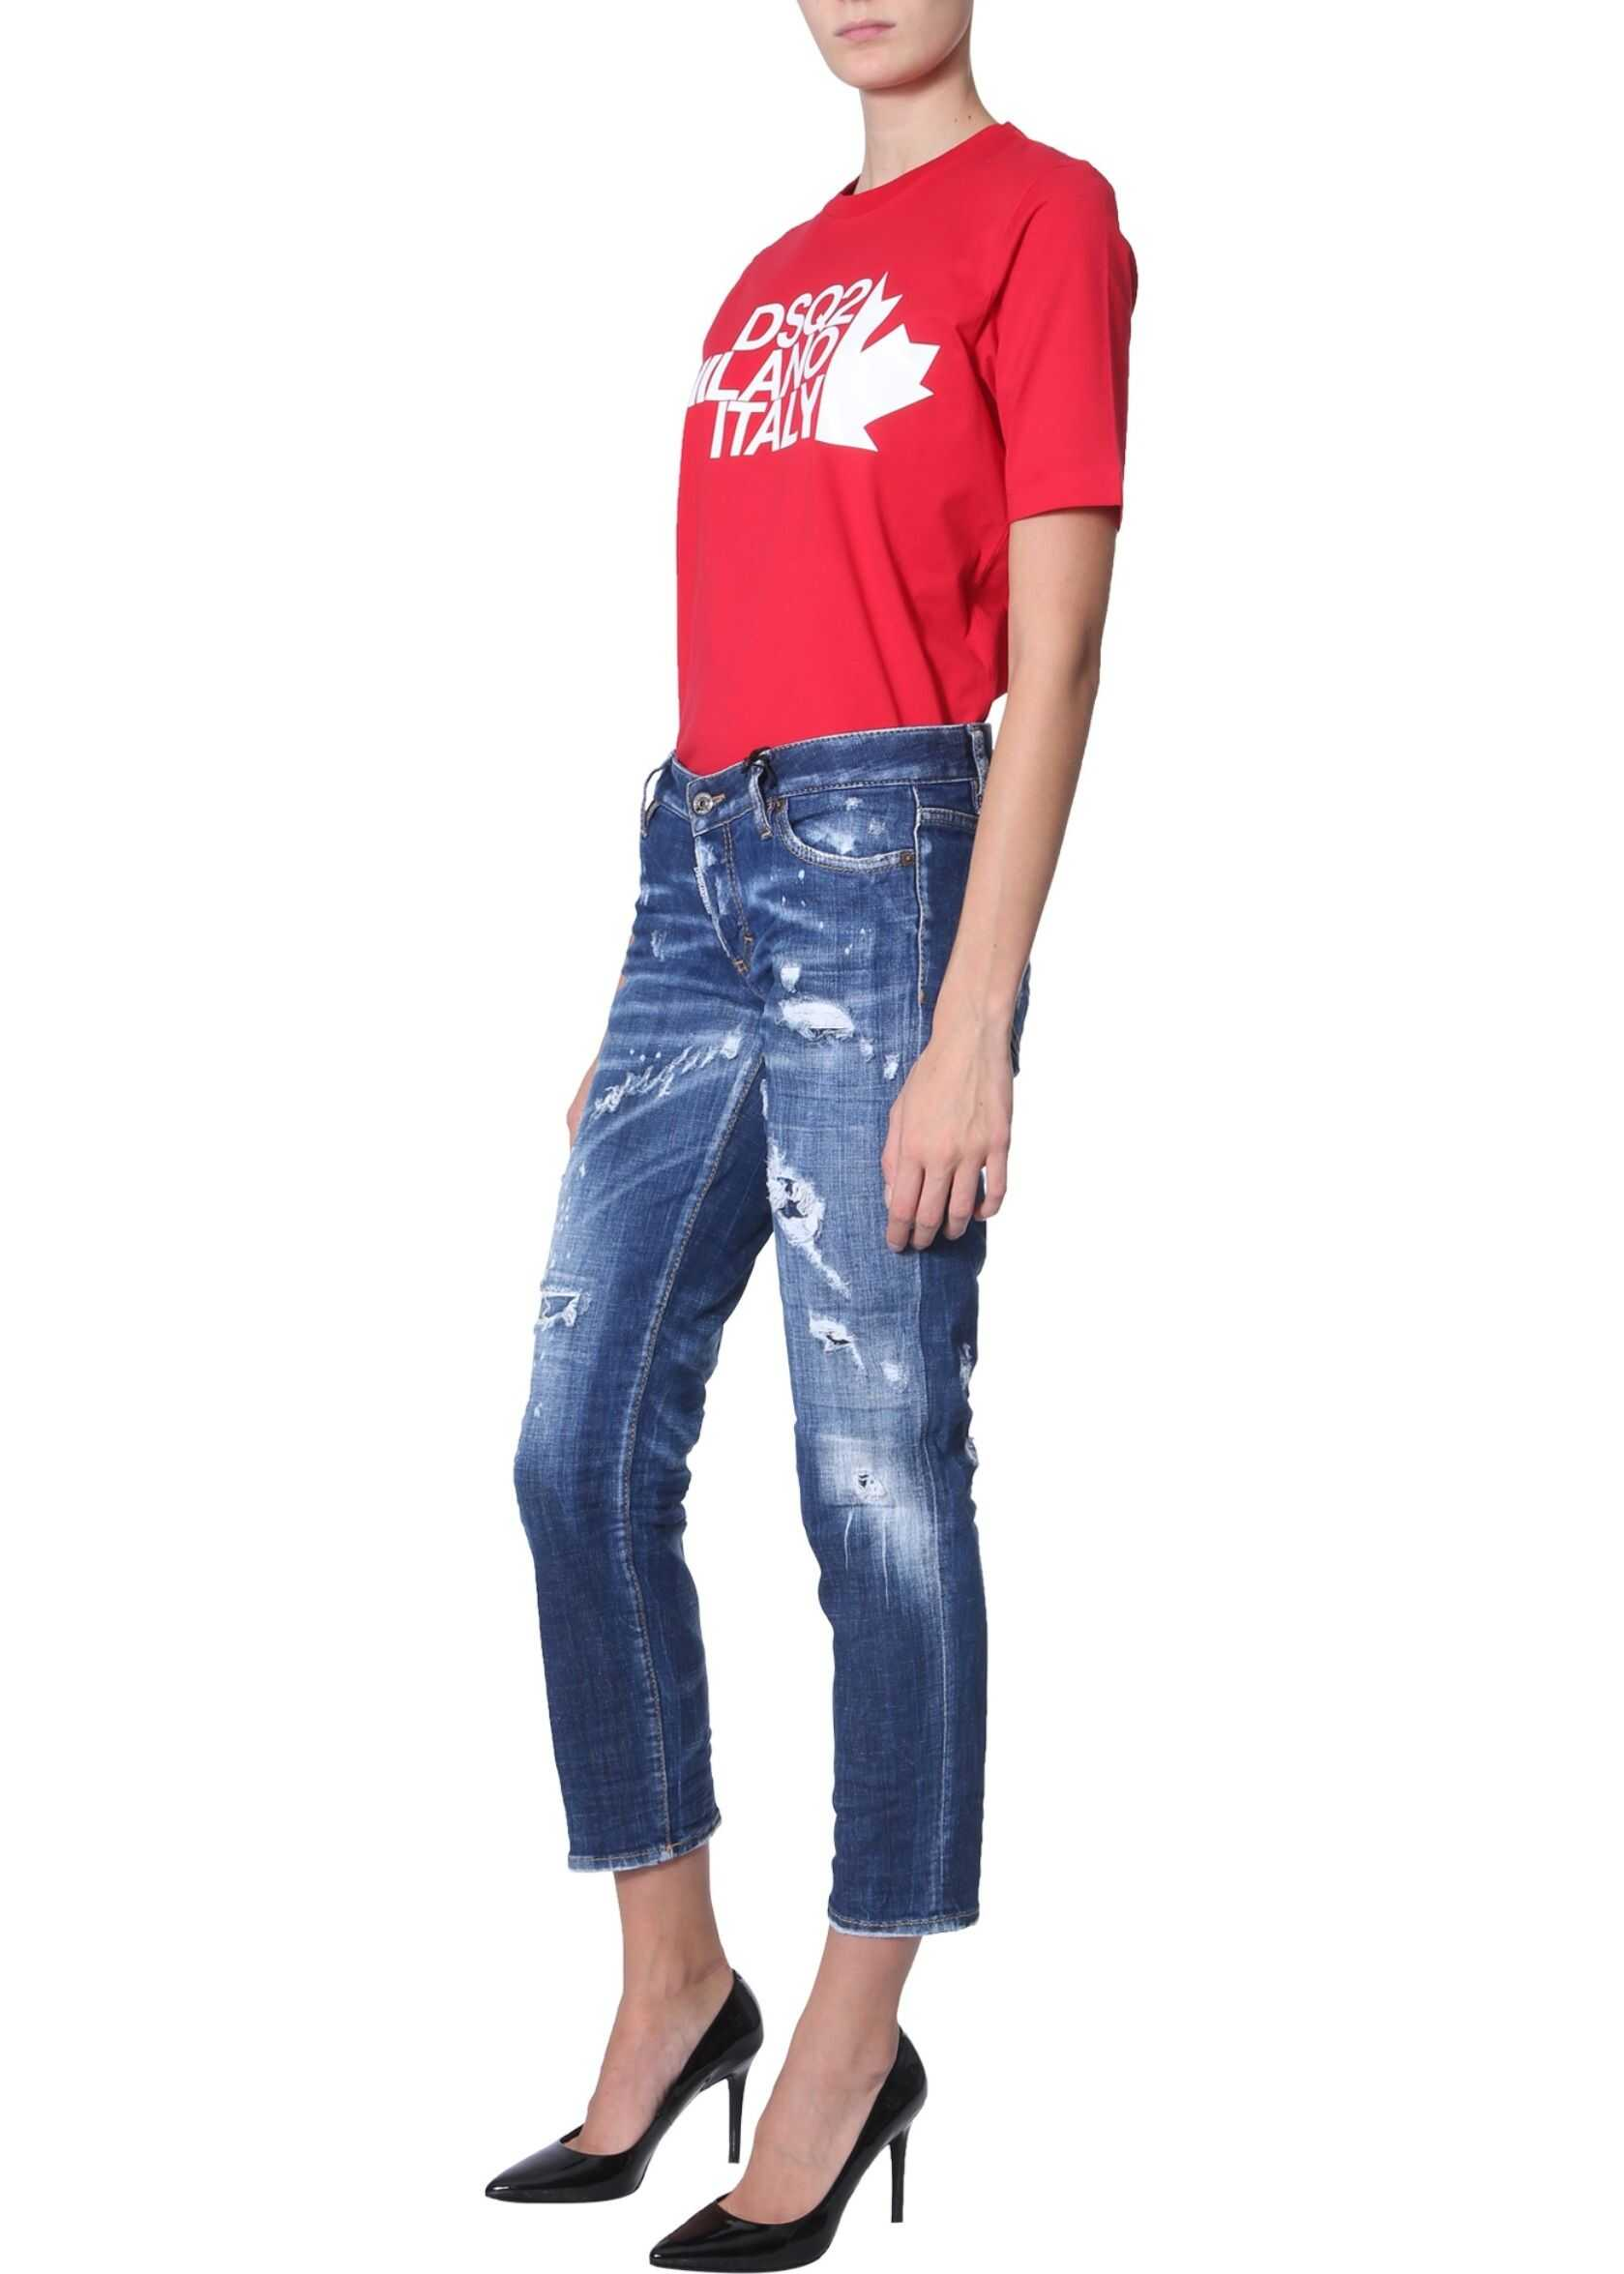 DSQUARED2 Renny Fit T-Shirt RED